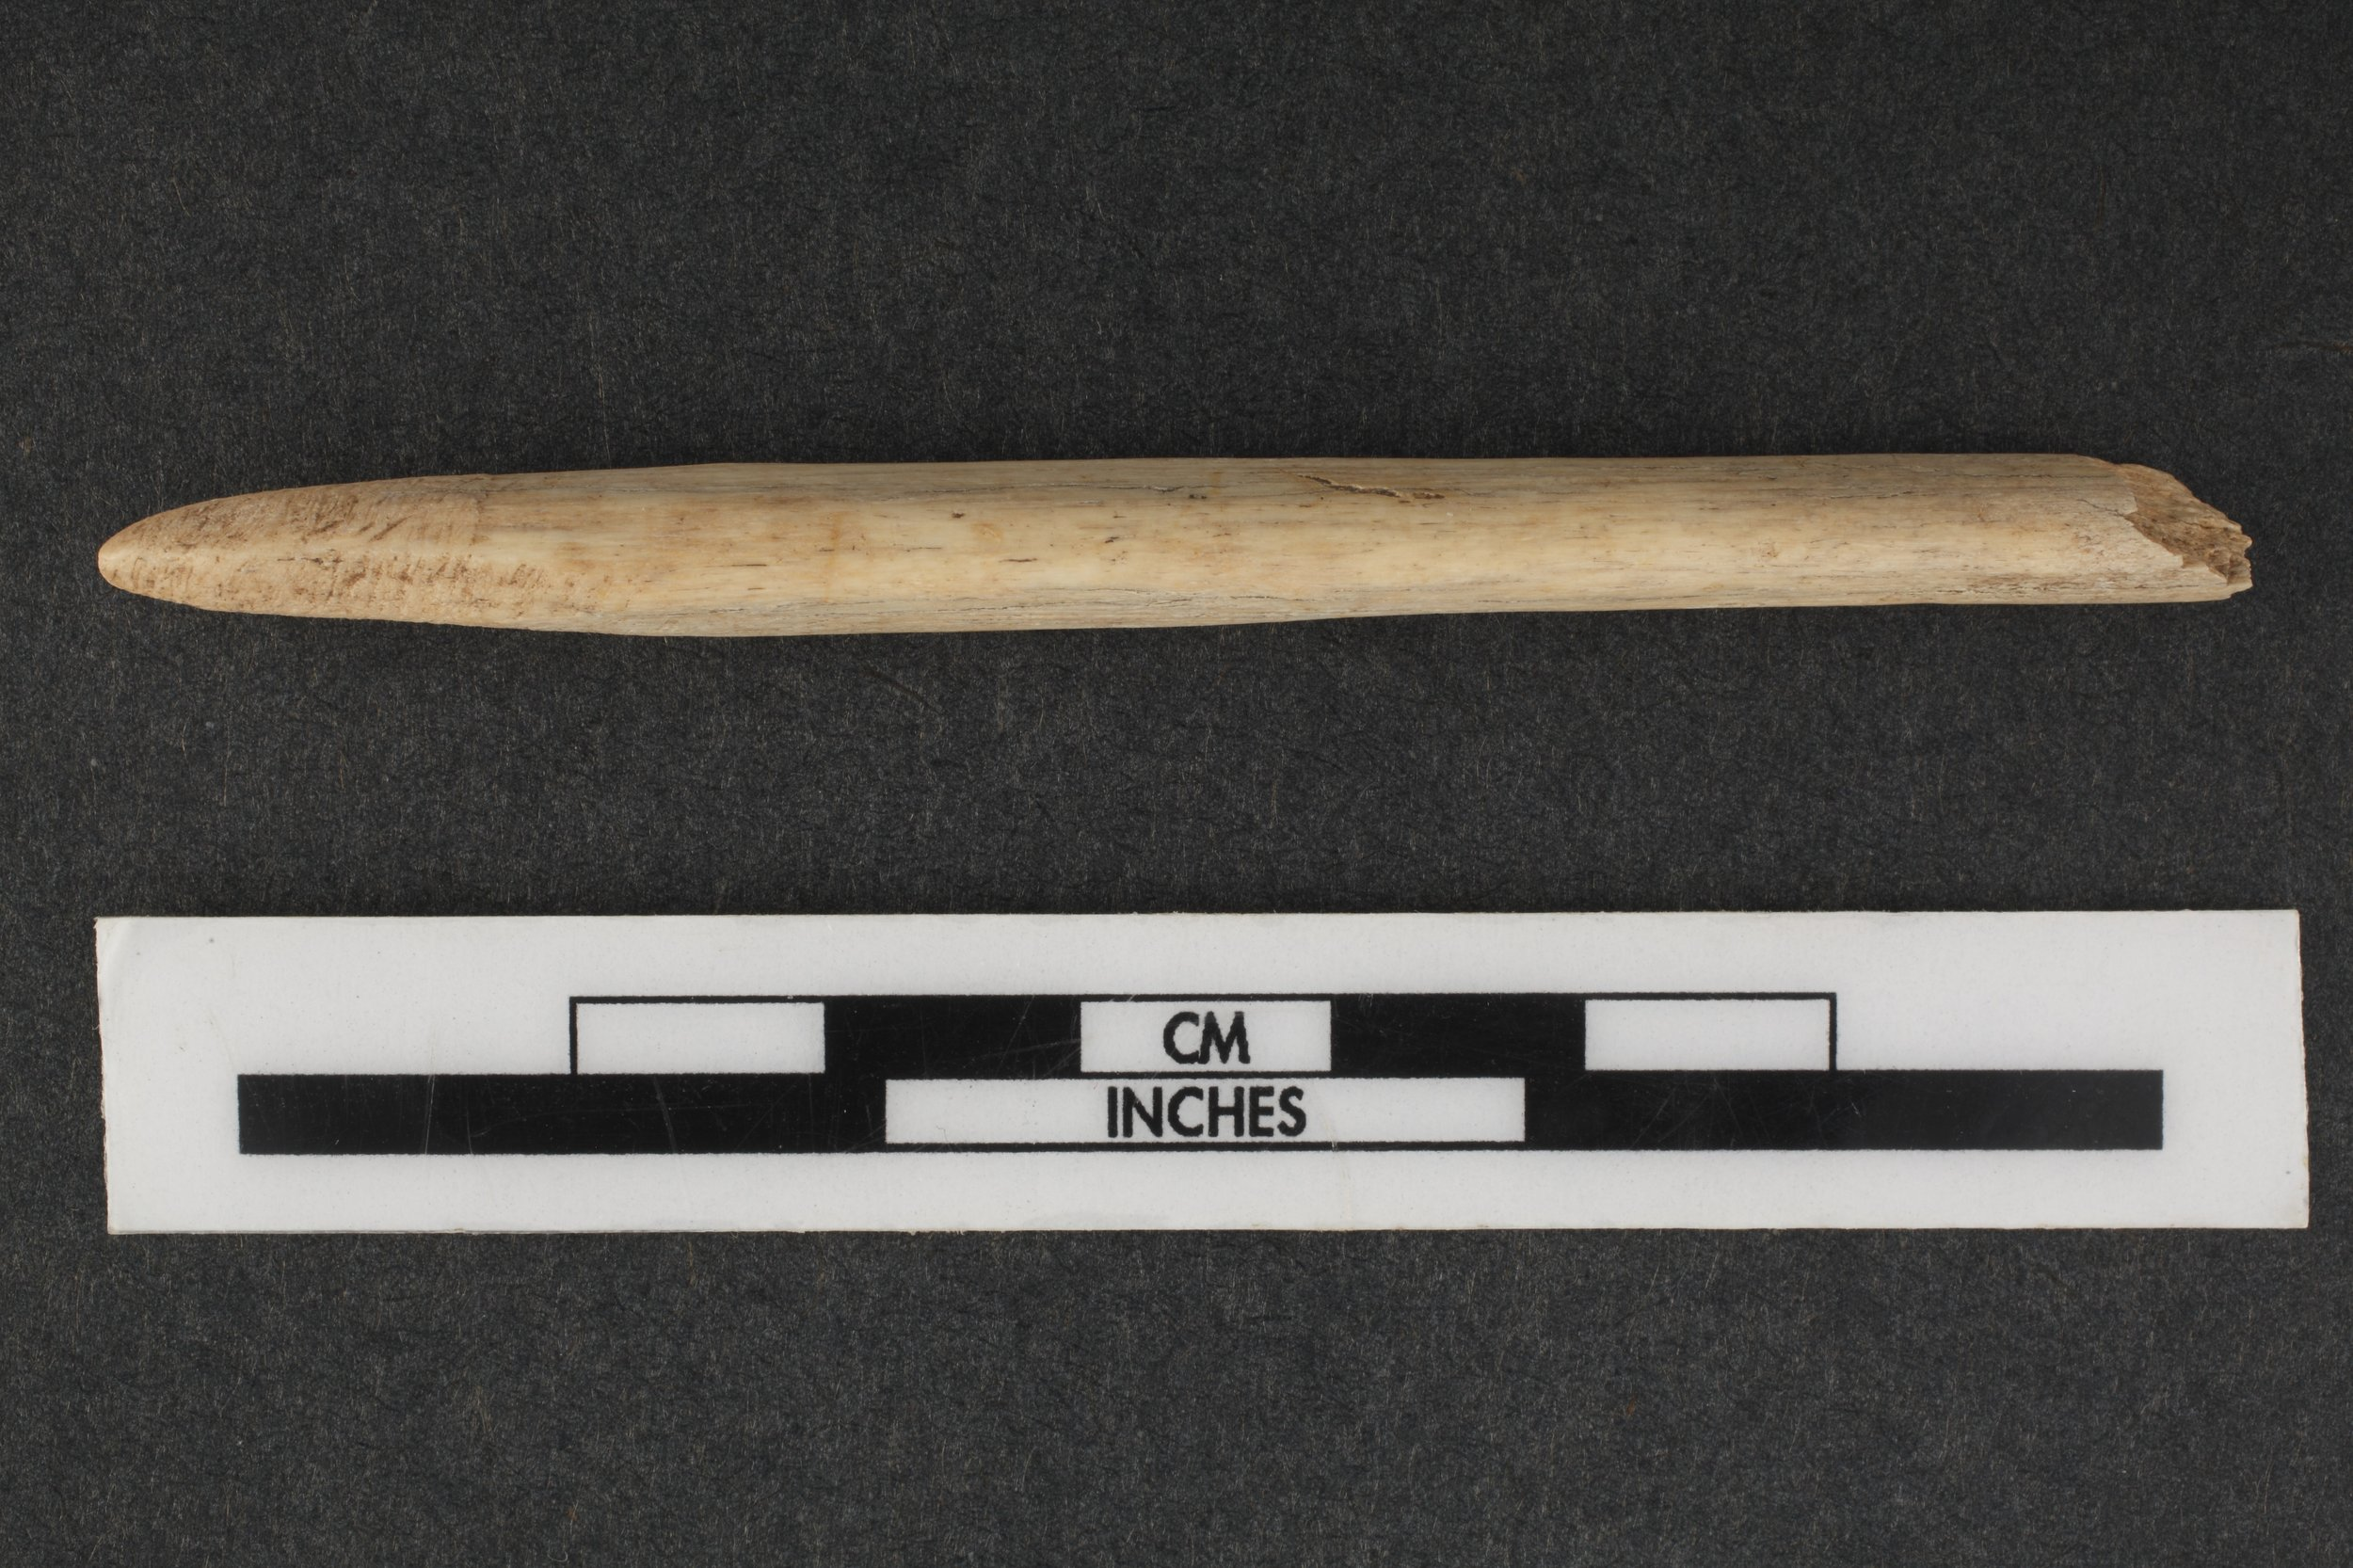 Bone Awl from the Saxman Site, 14RC301 - 1